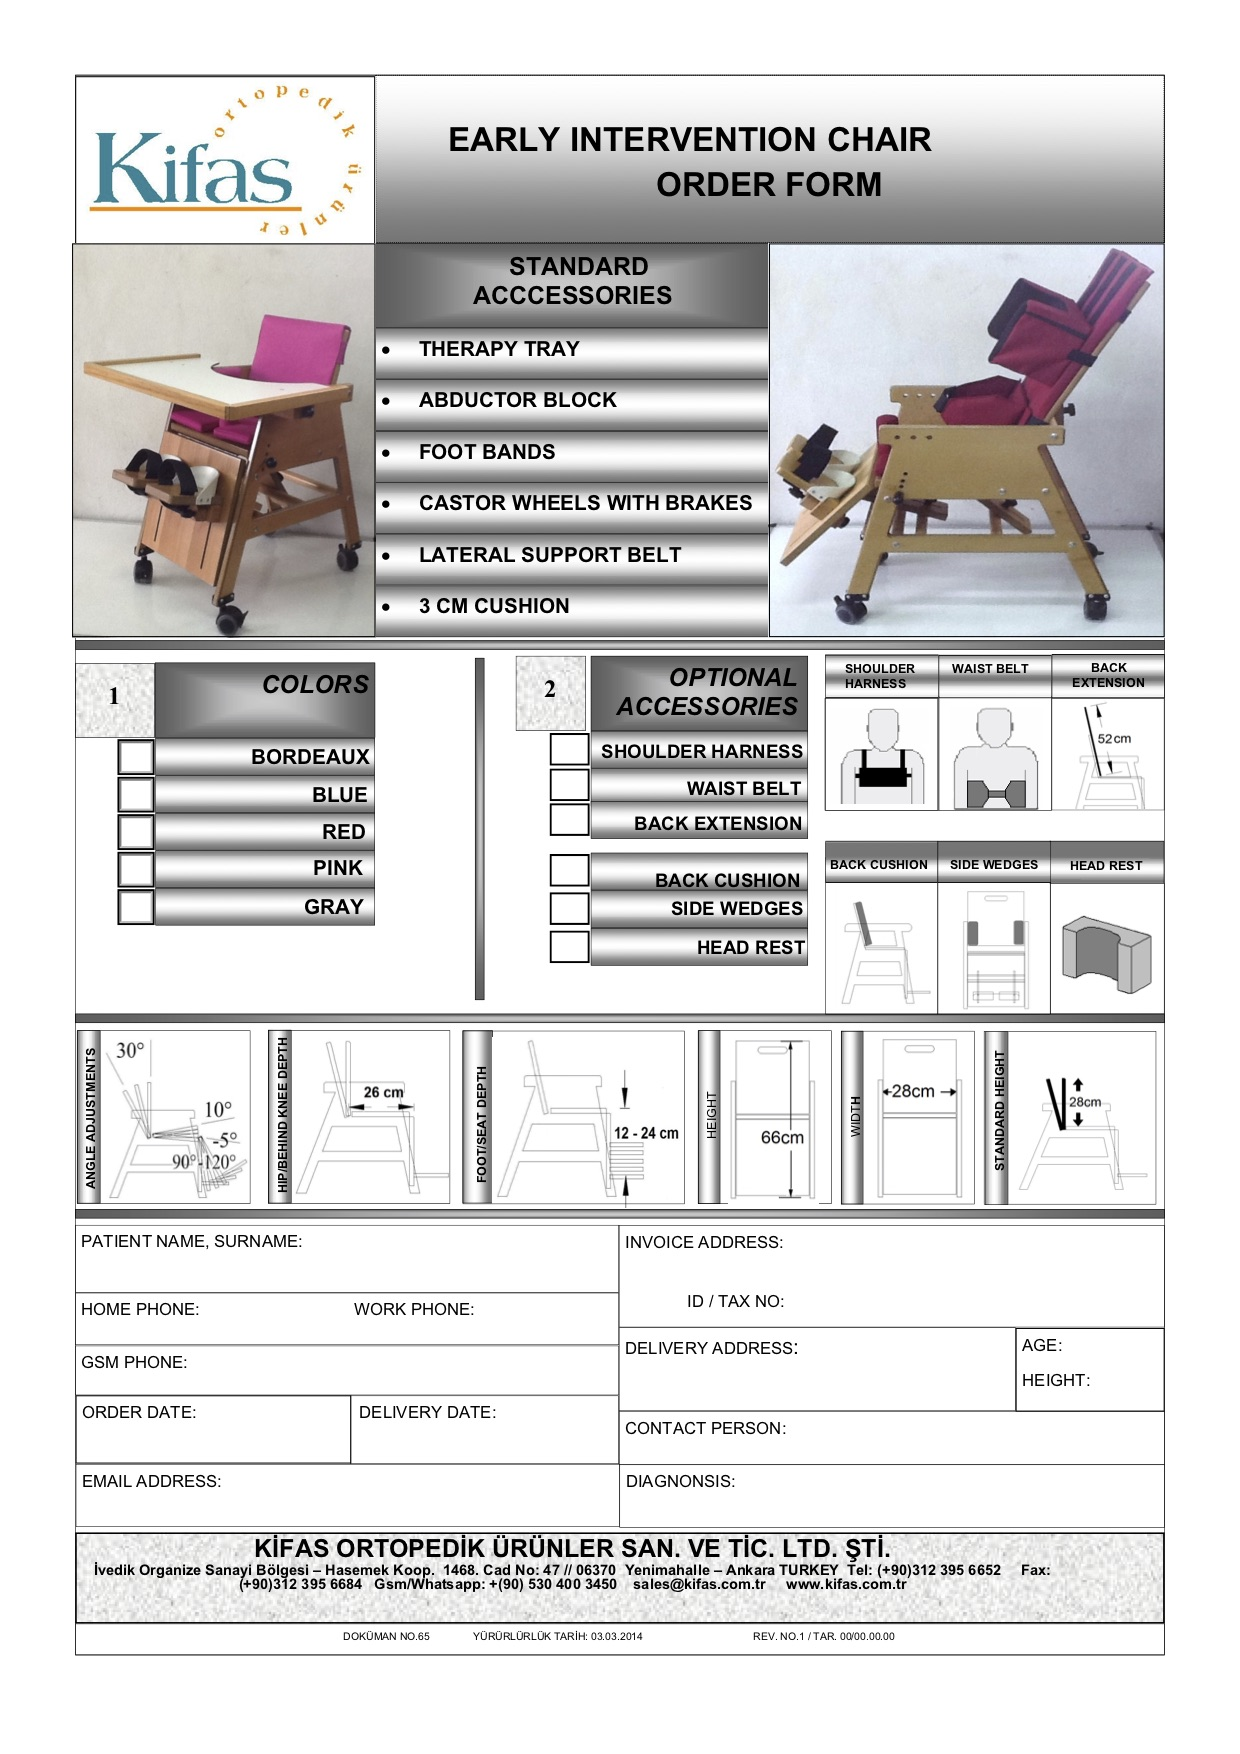 EARLY INTERVENTION CHAIR BROCHURE & ORDER FORM.jpg